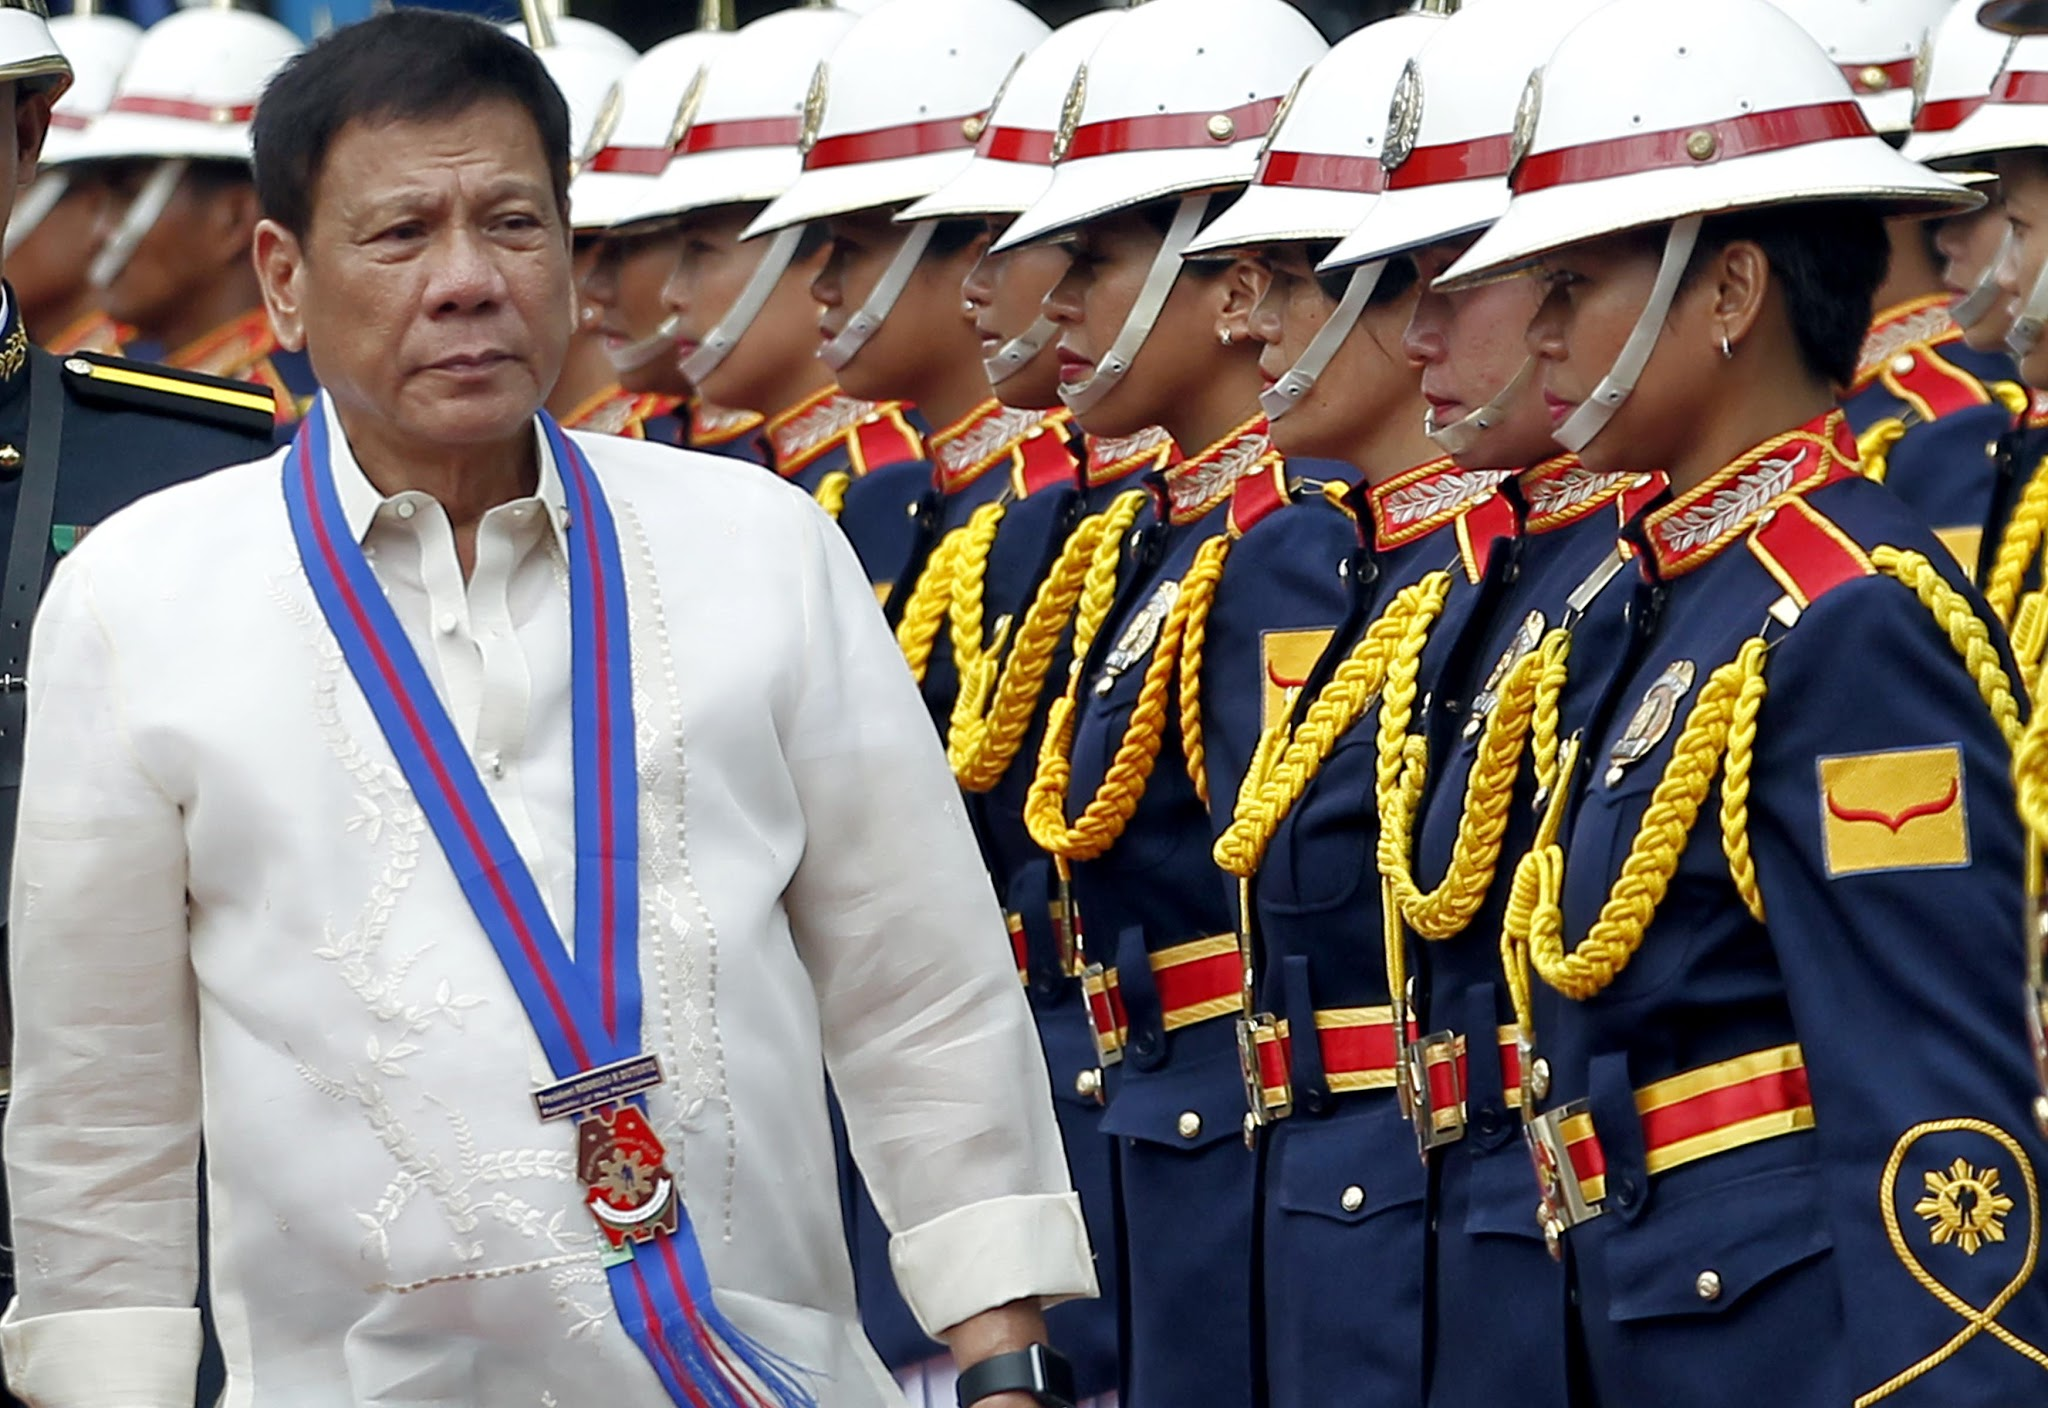 """Mamili kayo… You do it properly. Do not, huwag mong lokohin ang tao. Pag pinilit ninyo iyan, sarado kayong lahat,"" Duterte said referring to lawmakers' personal interests on changing the Constitution. (Photo: Rey S. Baniquet/PPD)"